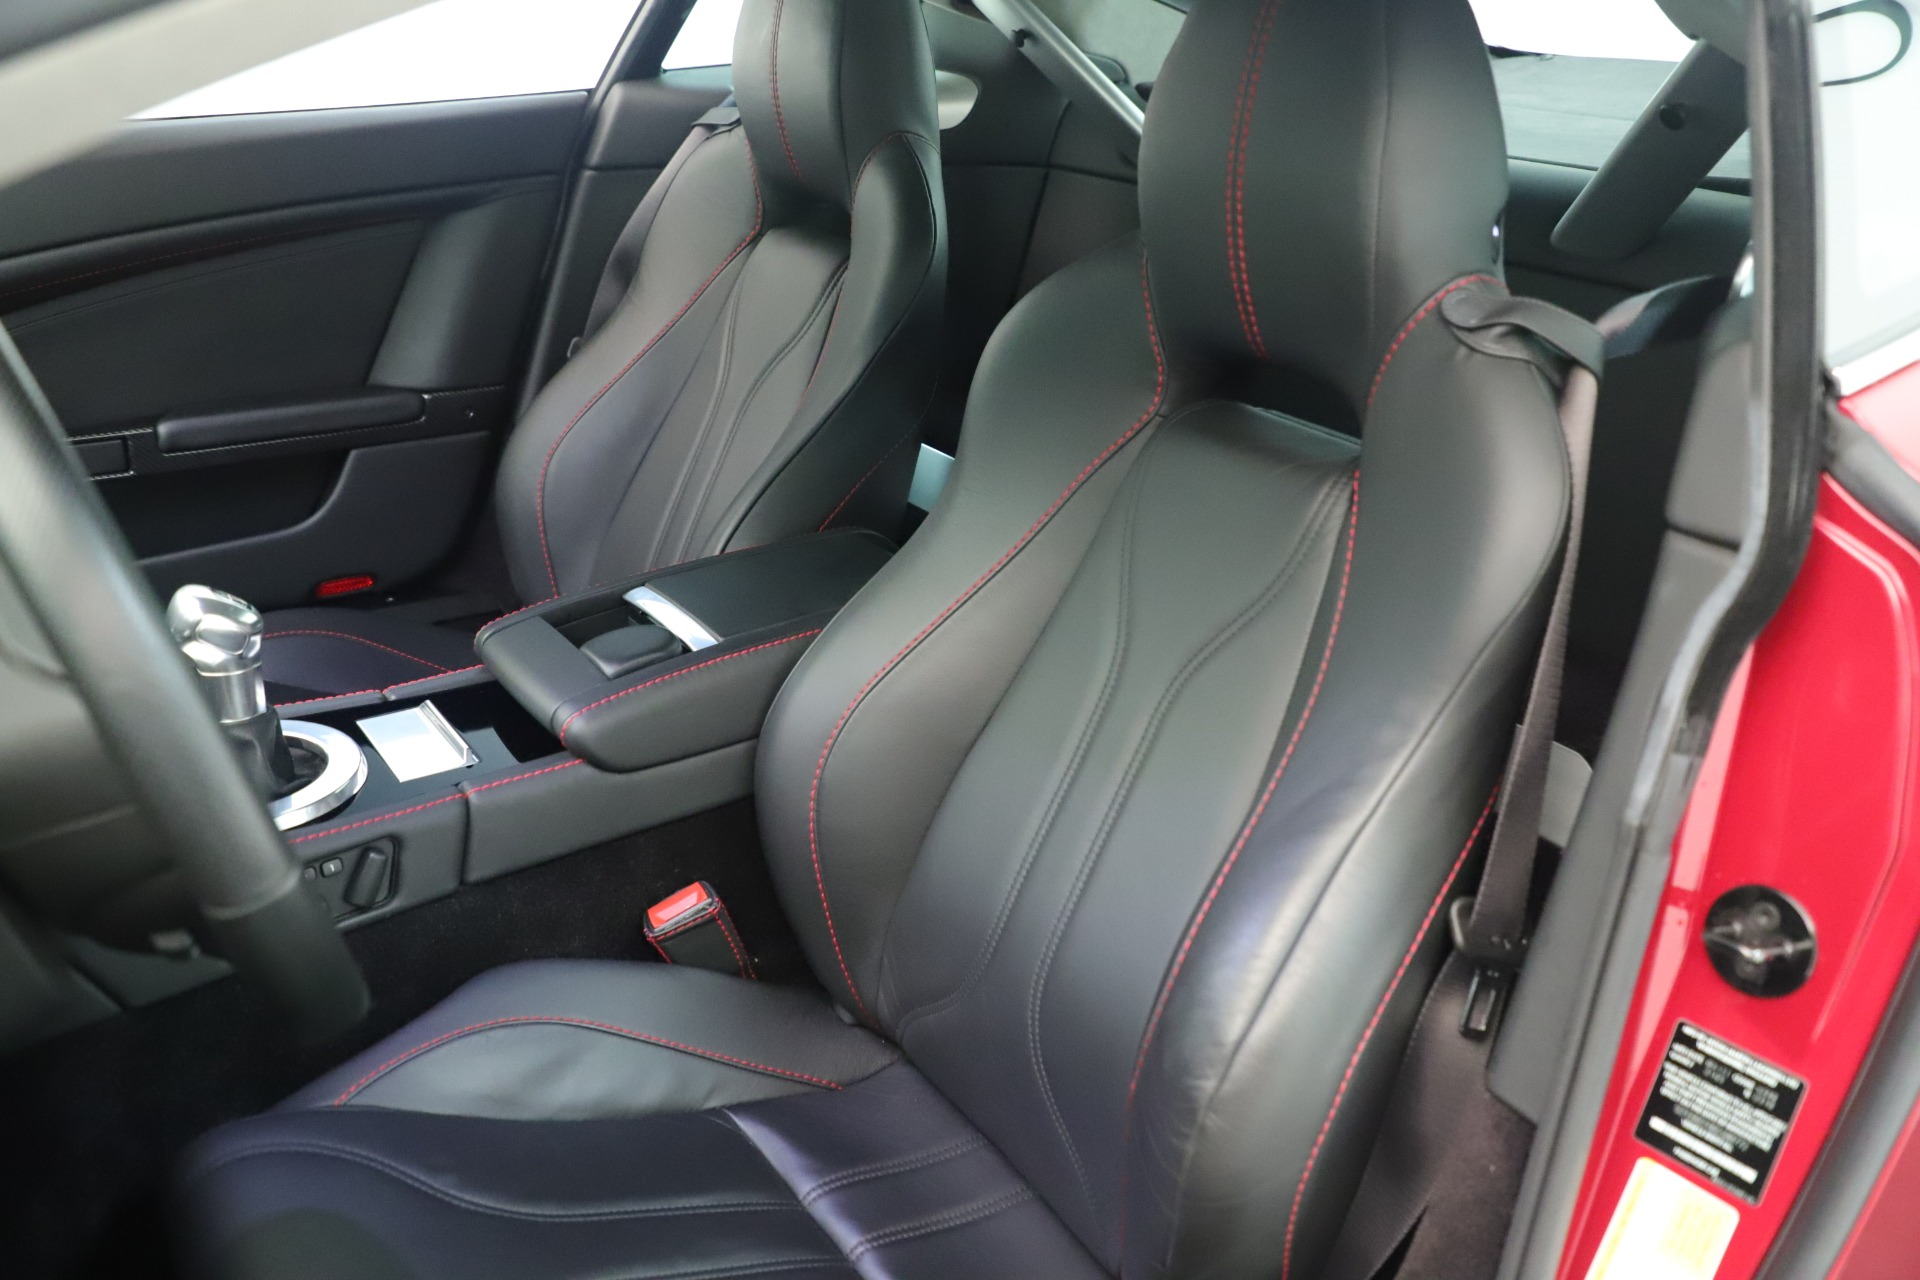 Used 2011 Aston Martin V12 Vantage Coupe For Sale In Greenwich, CT 3395_p25